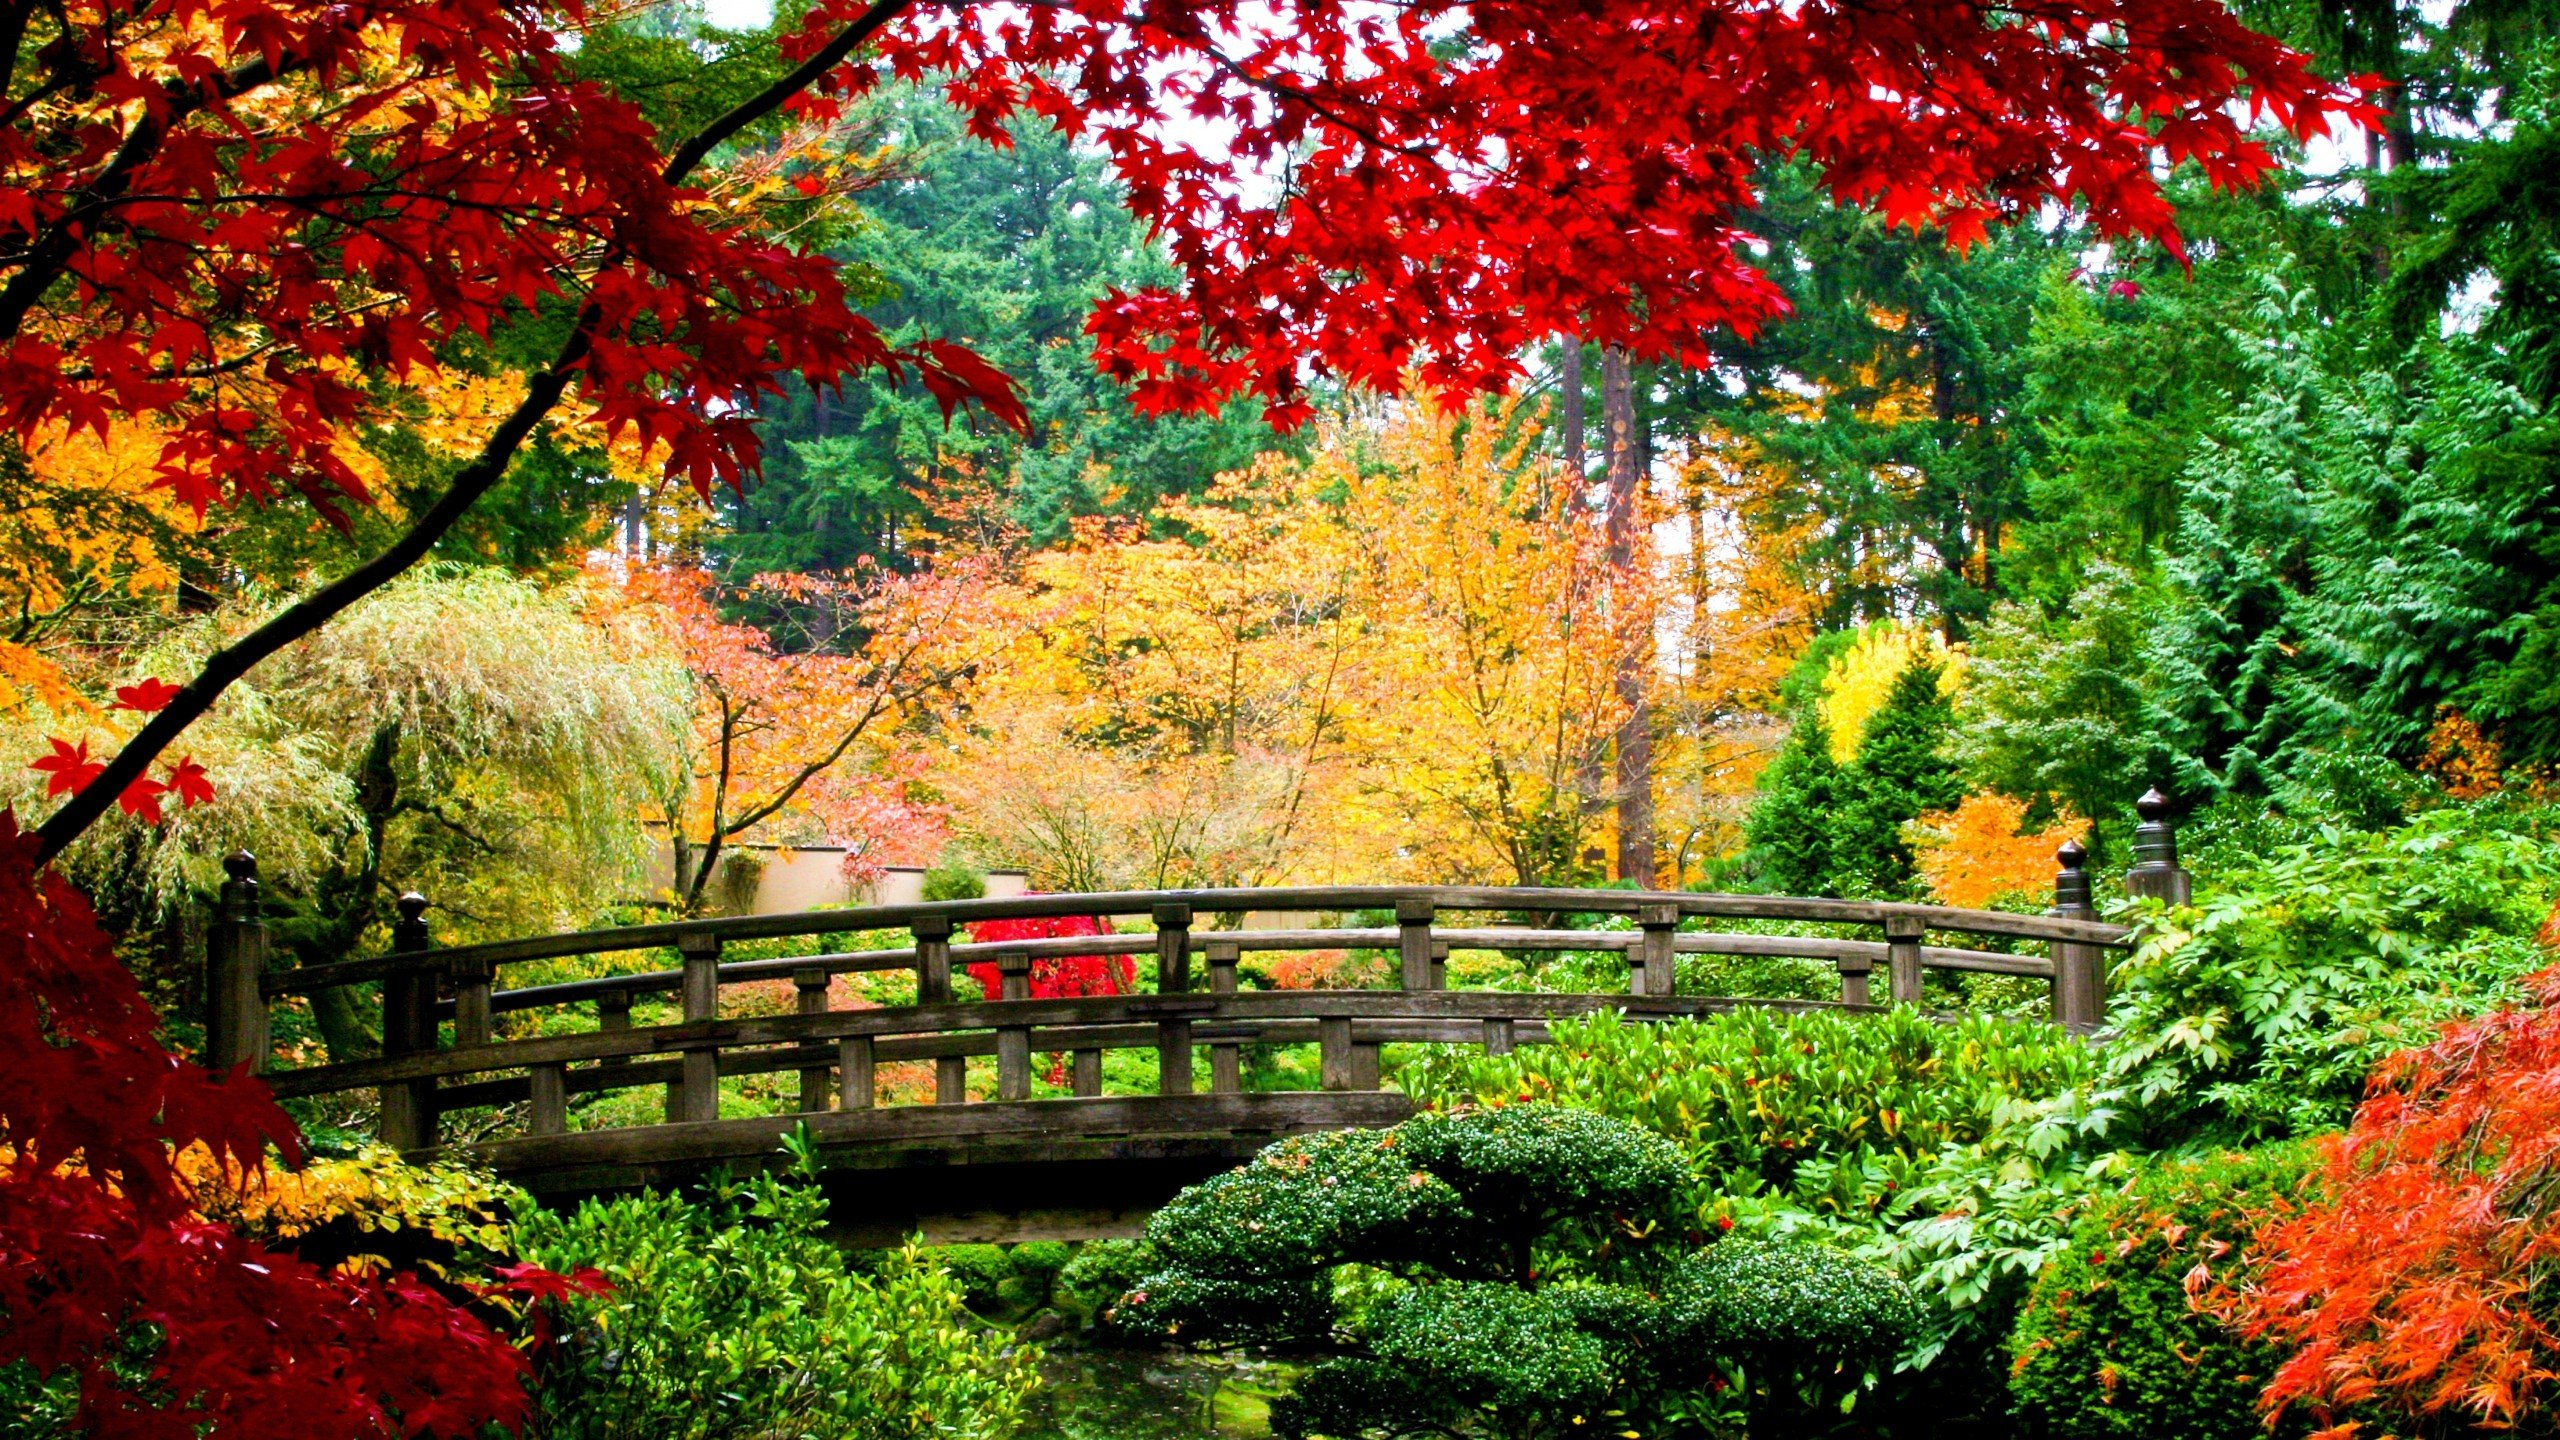 Nature Trees Autumn Colorful Garden Wallpaper [2560x1440]